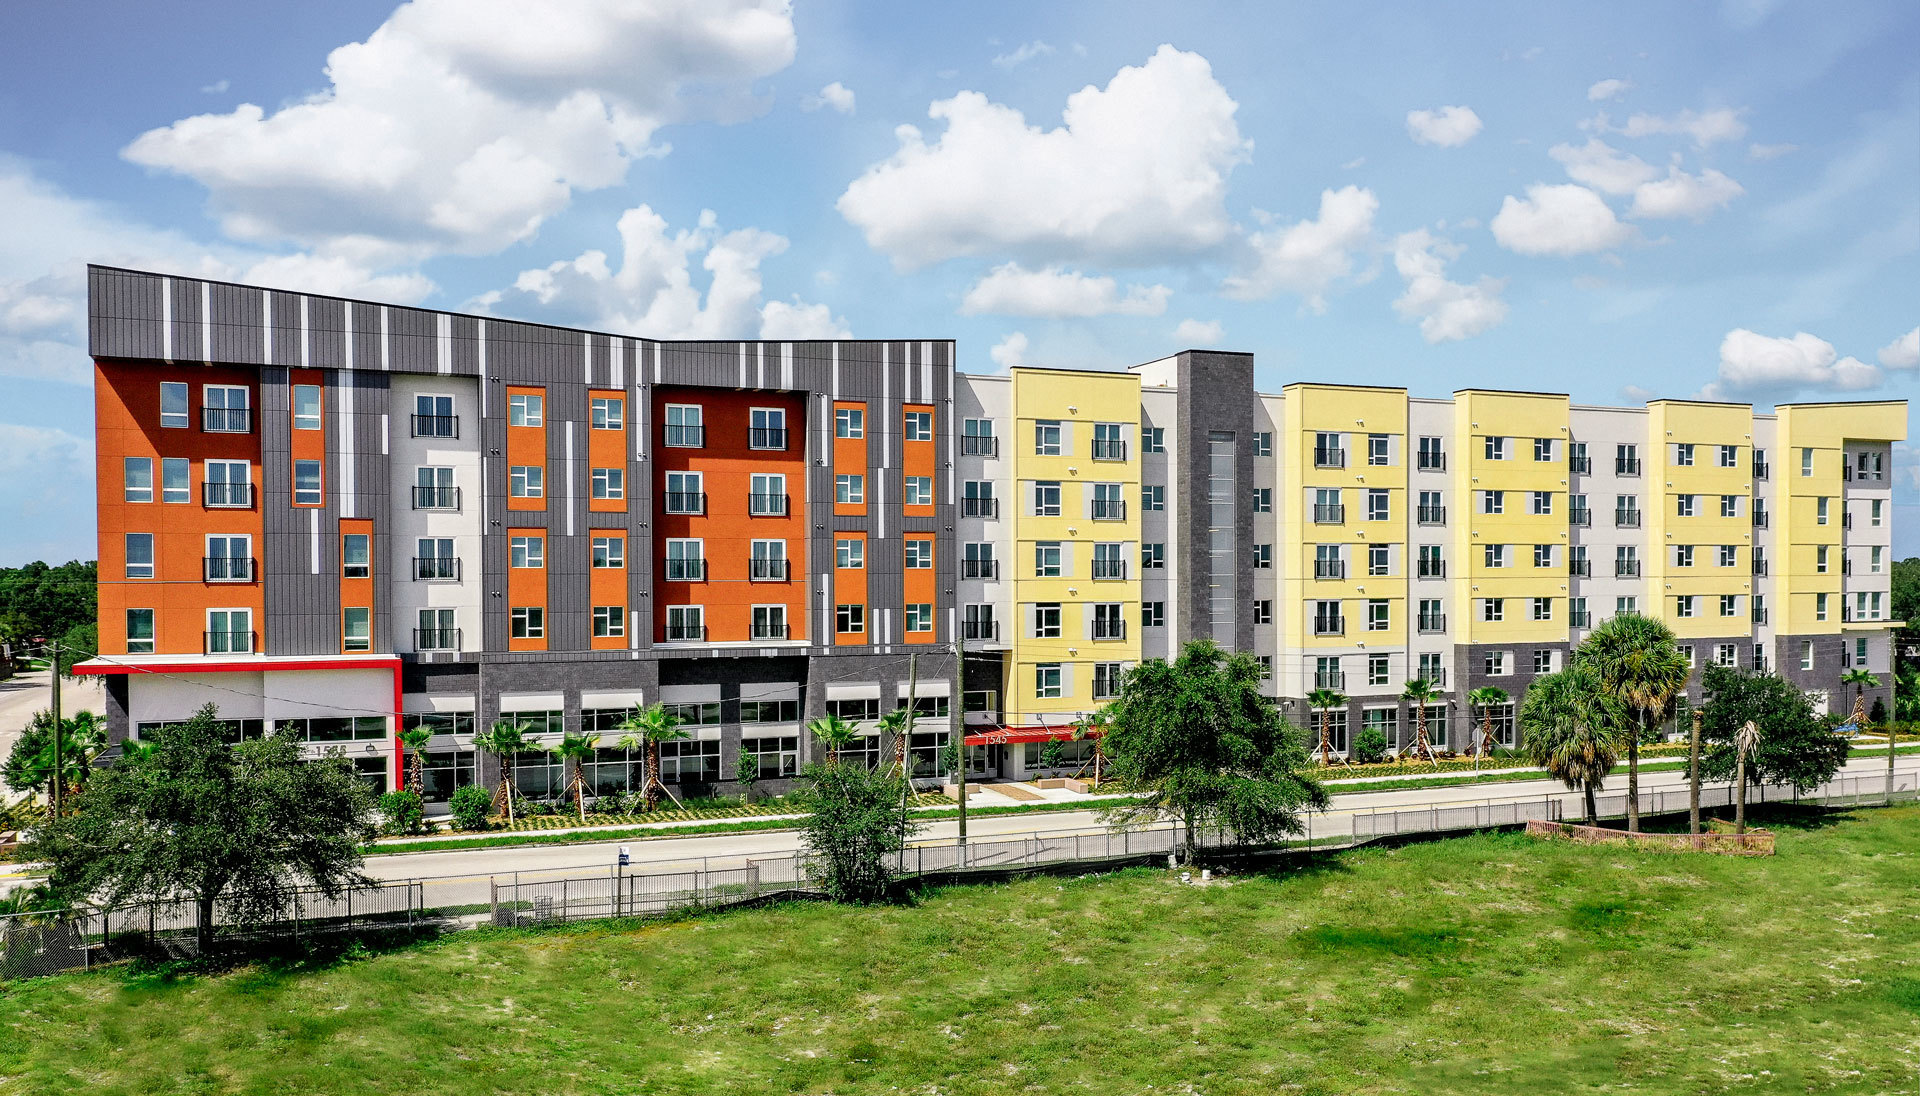 render of two finished residence buildings